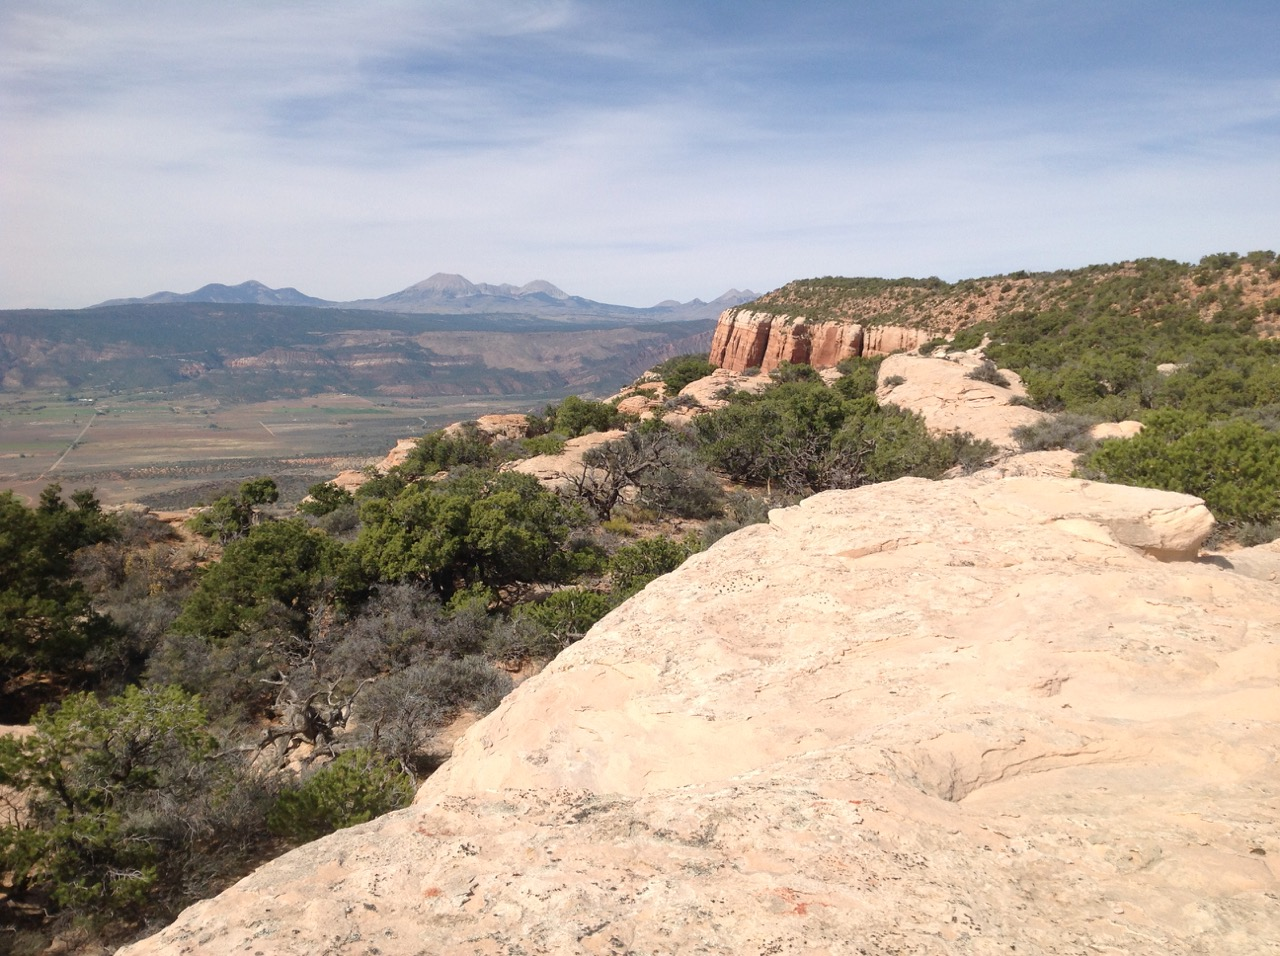 Views into the Paradox Valley with the La Sal mountains in the background make the climb worthwhile.